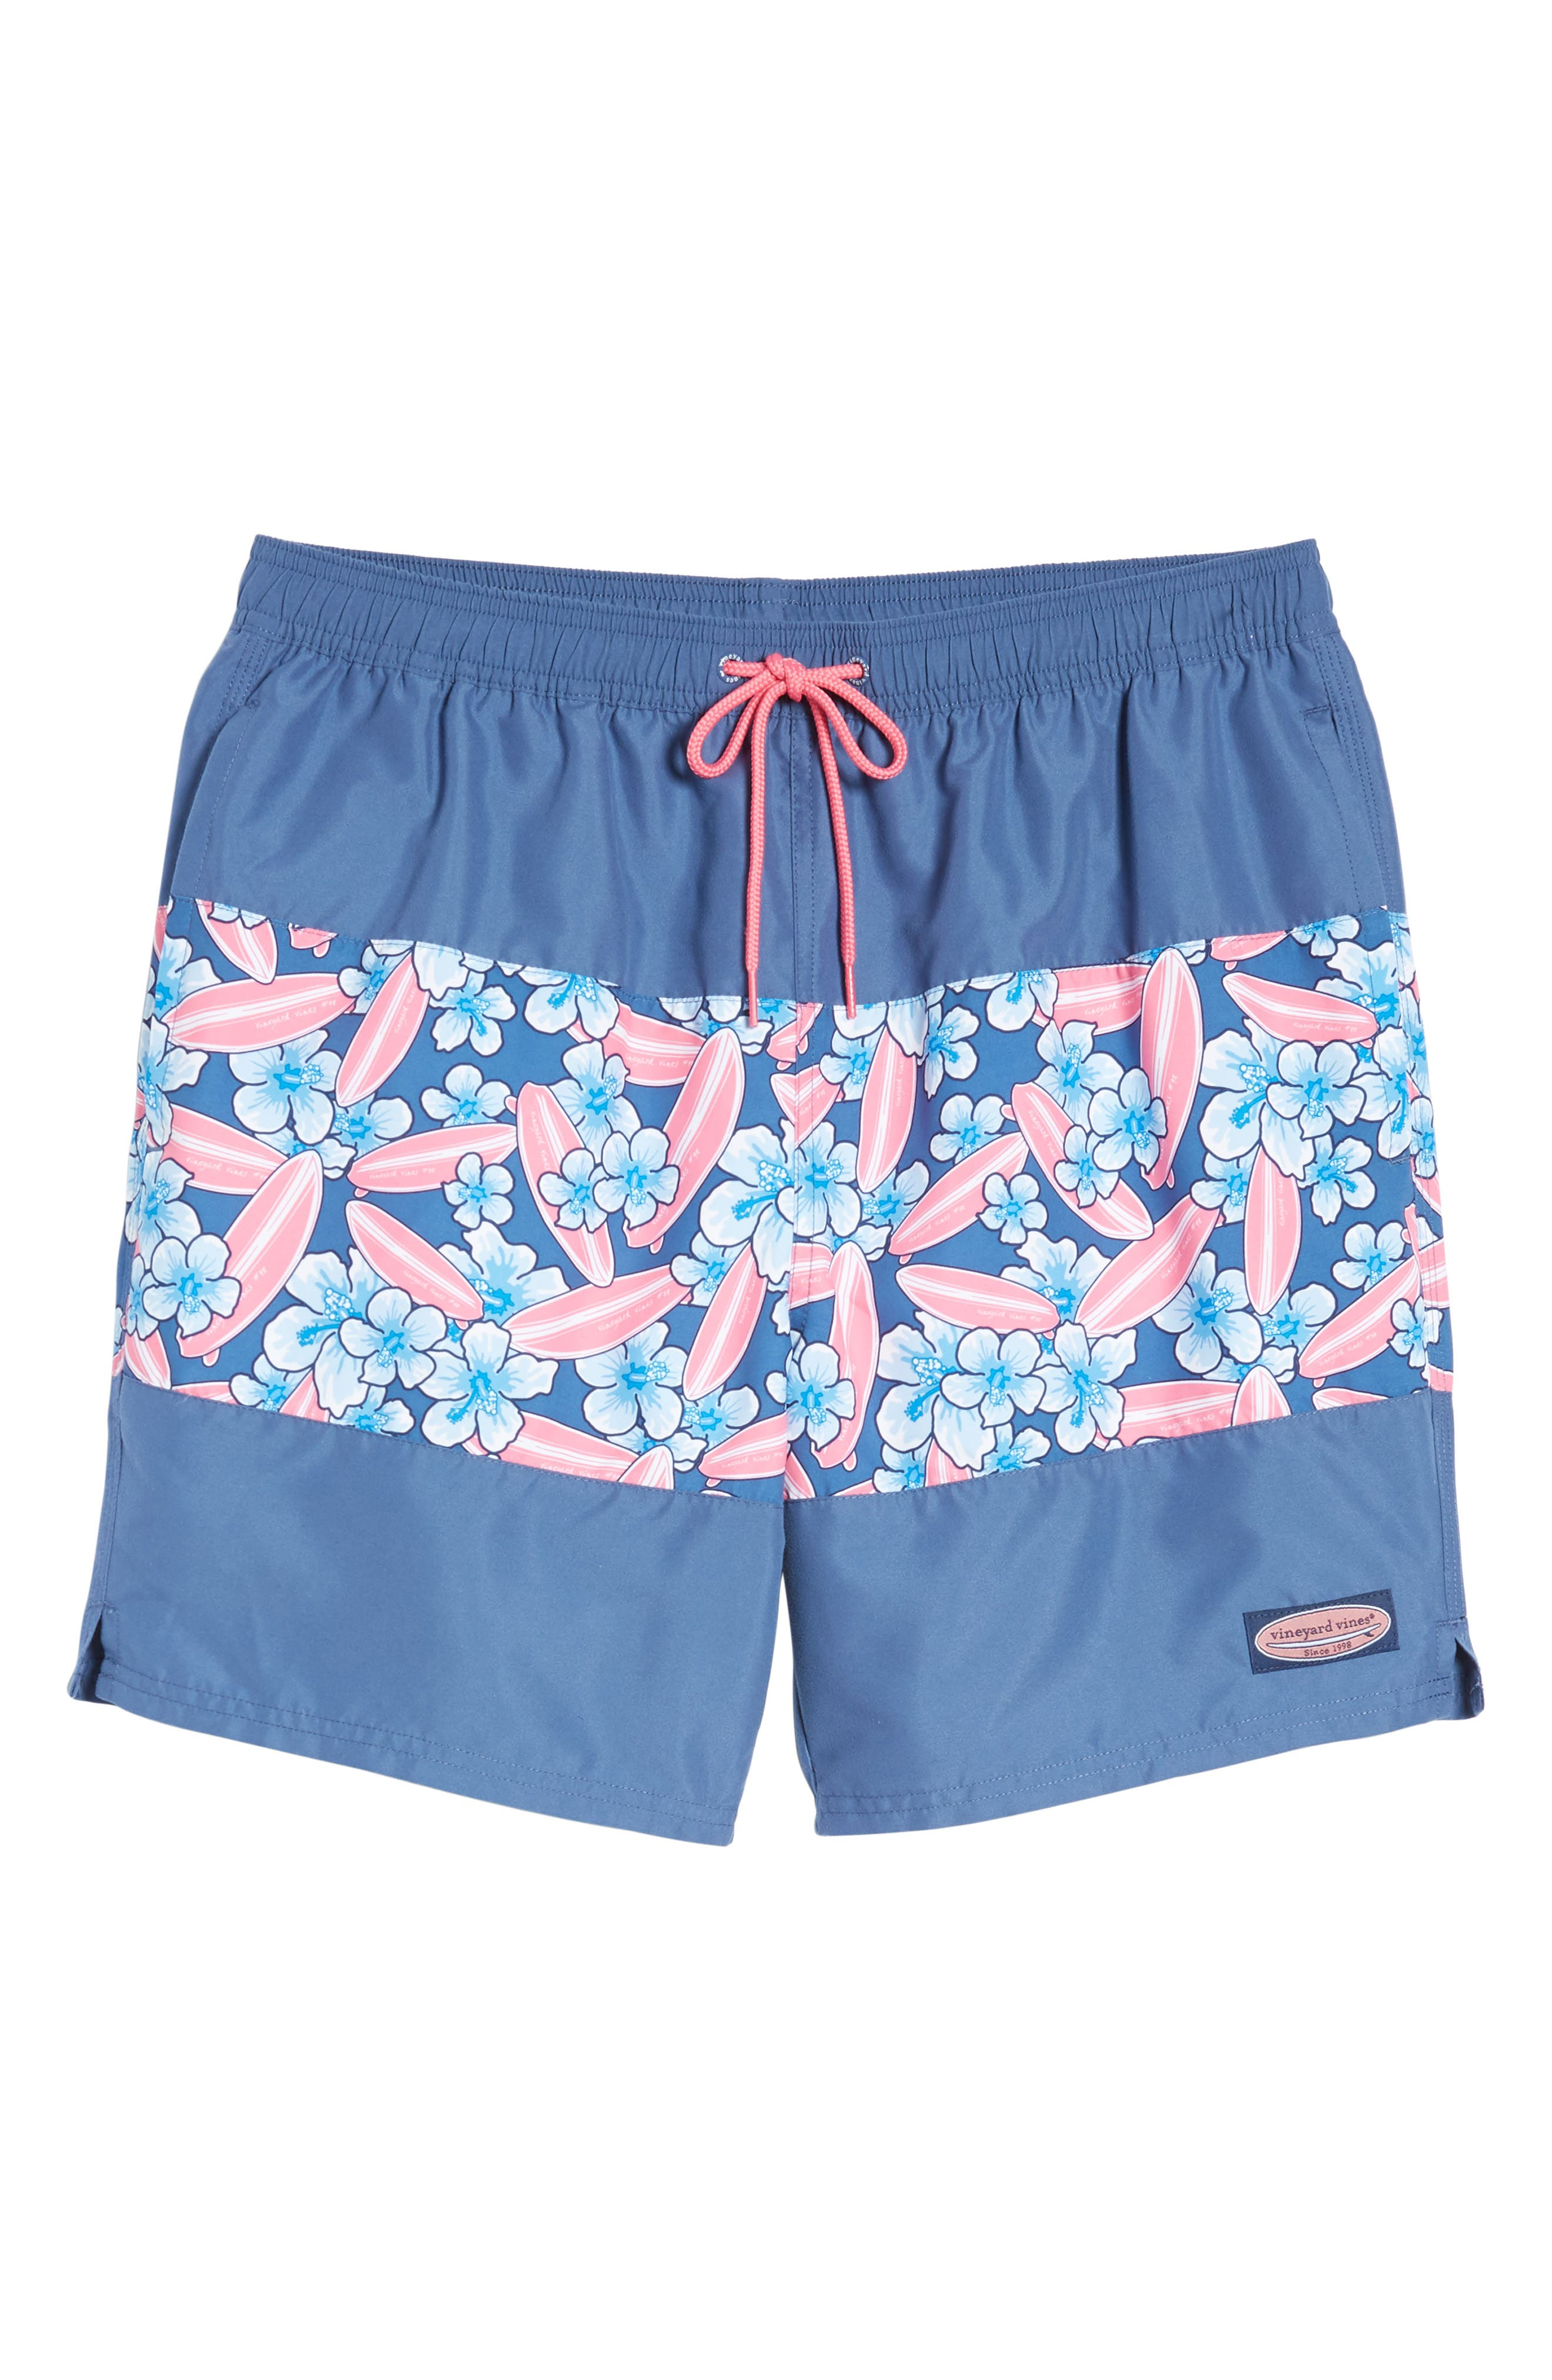 Chappy Pieced Surfboard Swim Trunks,                             Alternate thumbnail 6, color,                             Moonshine